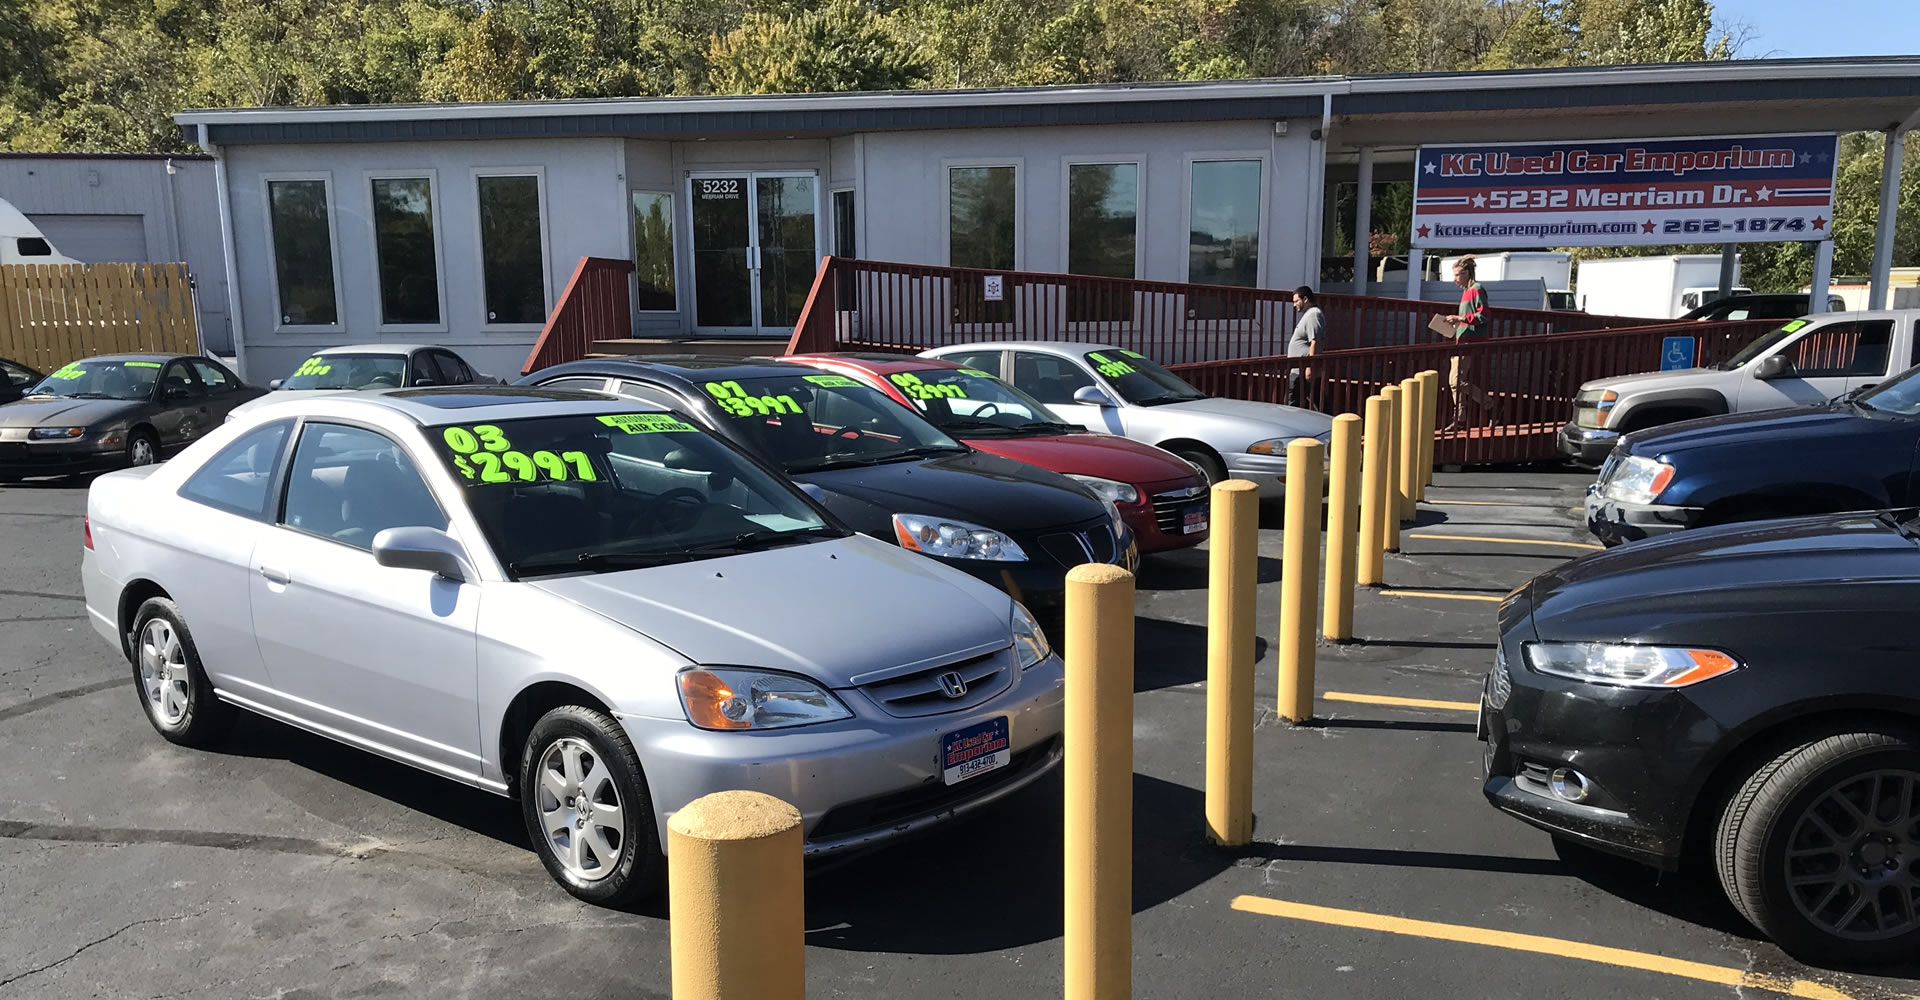 Cars for Sail Awesome Kc Used Car Emporium Kansas City Ks